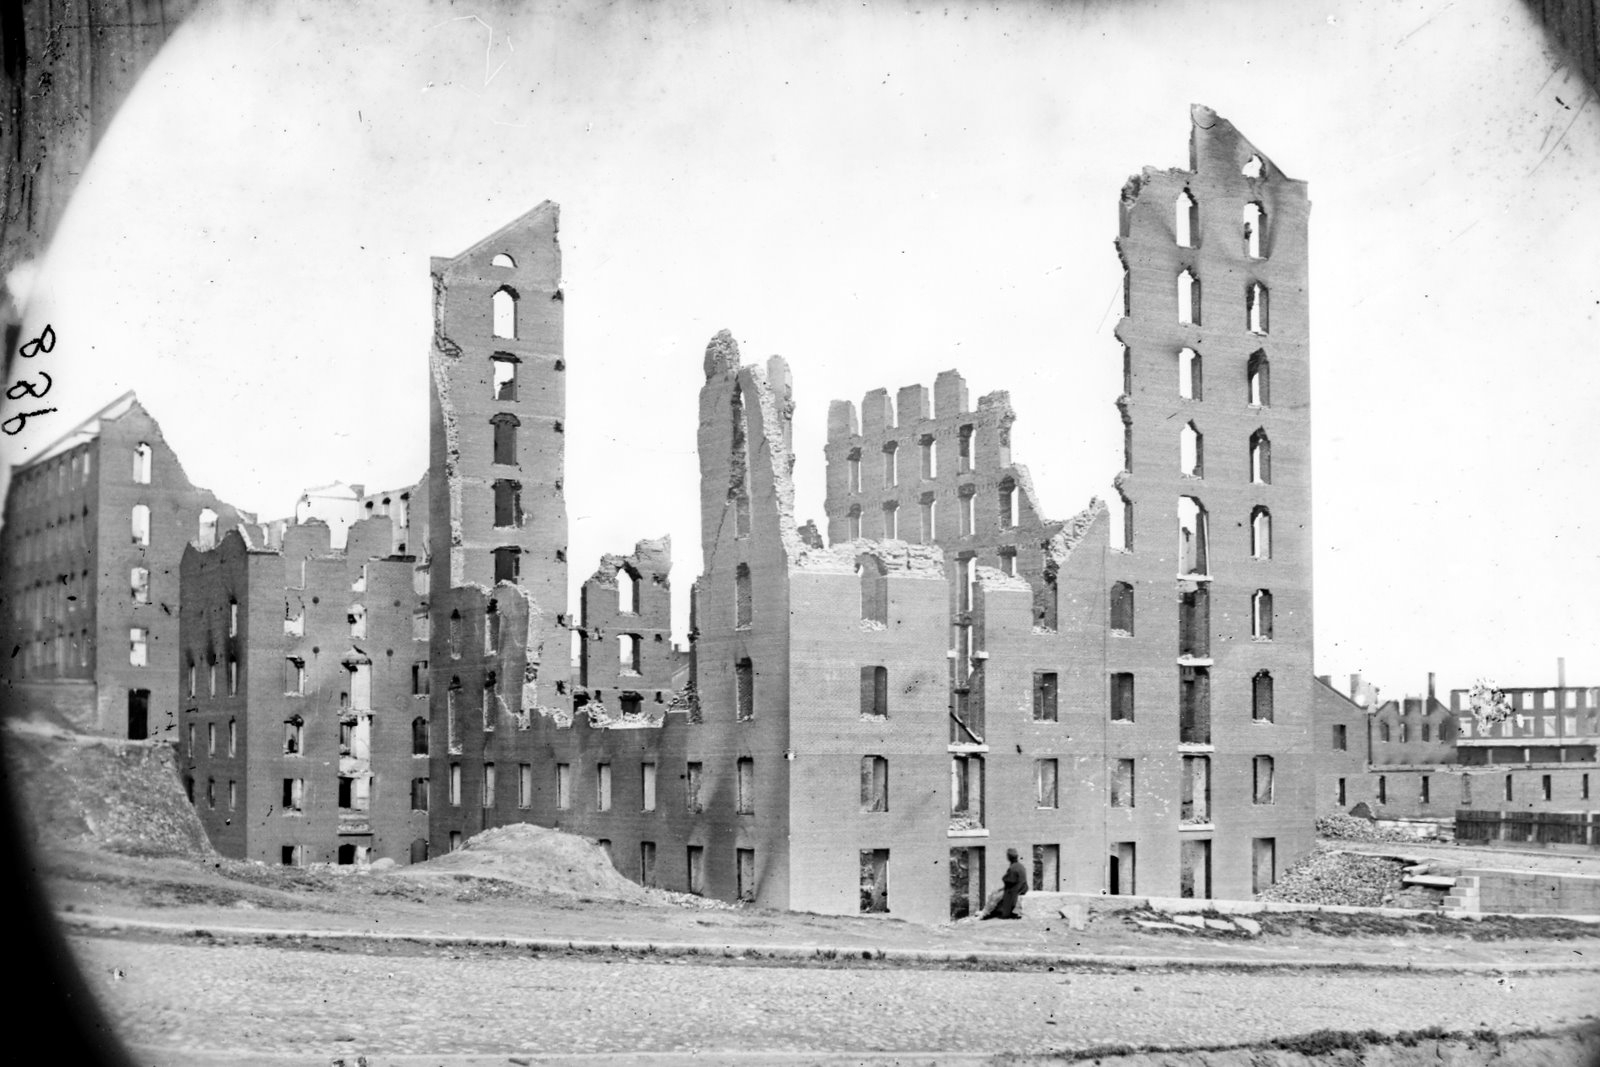 Gallego Mills in 1865. The ruins of the of 9-story 1848 mill are seen on the left of the image, behind the newer 12-story mill. (27)